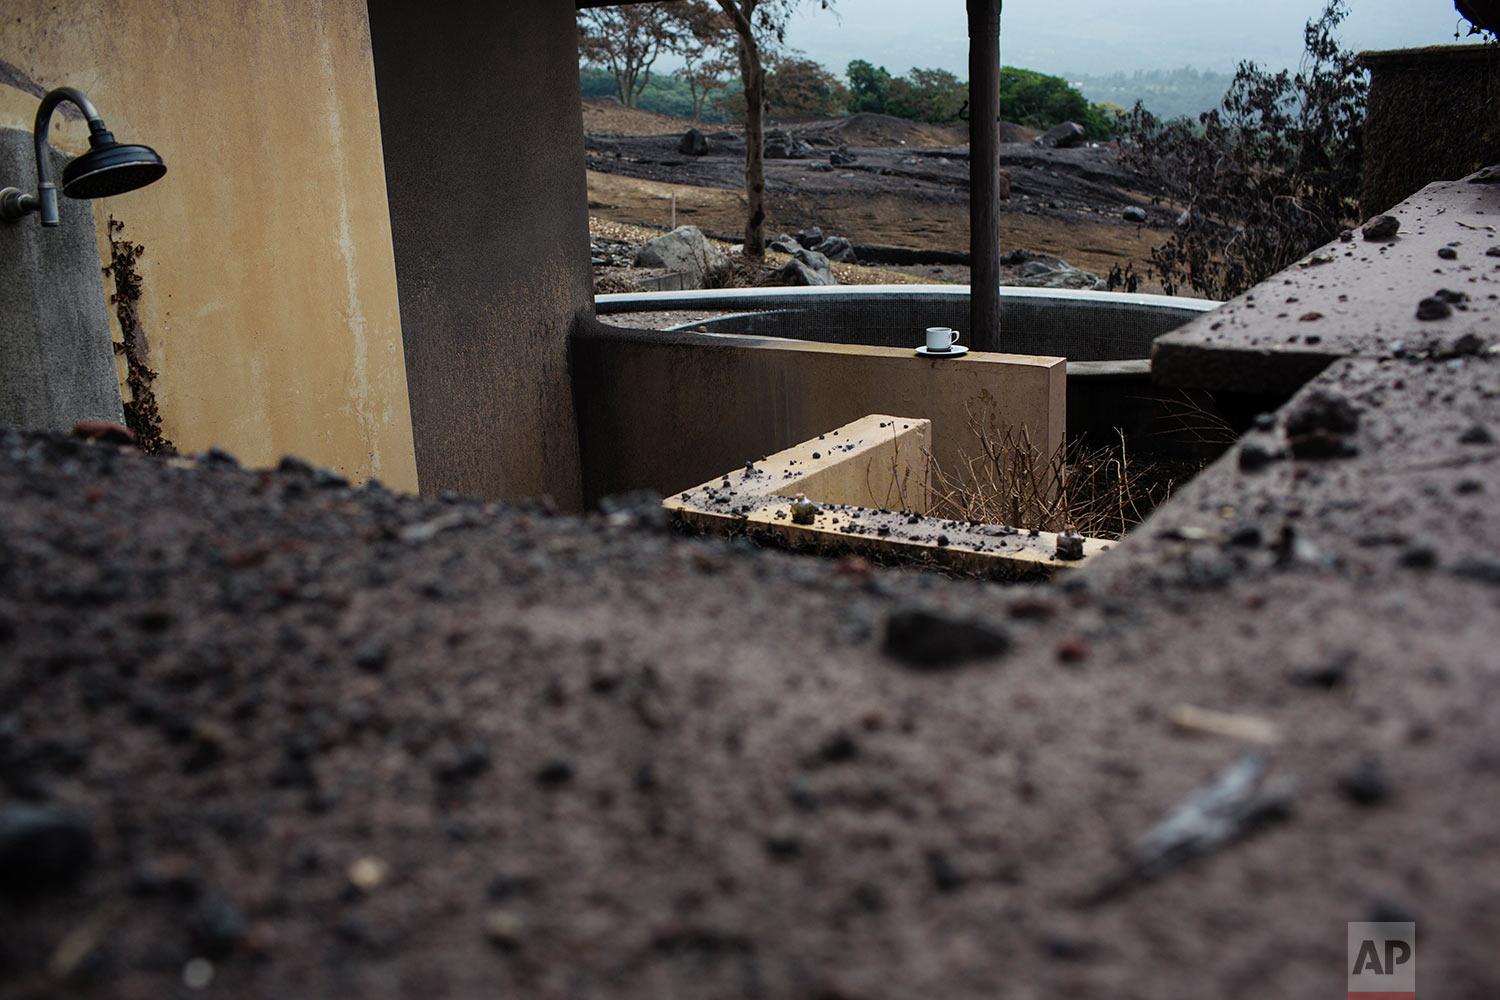 In this June 16, 2018 photo, a coffee cup remains on the rim of a pool at La Reunion Golf Resort & Residences, destroyed by the eruption of the Volcano of Fire in San Miguel Los Lotes, Guatemala. (AP Photo/Rodrigo Abd)